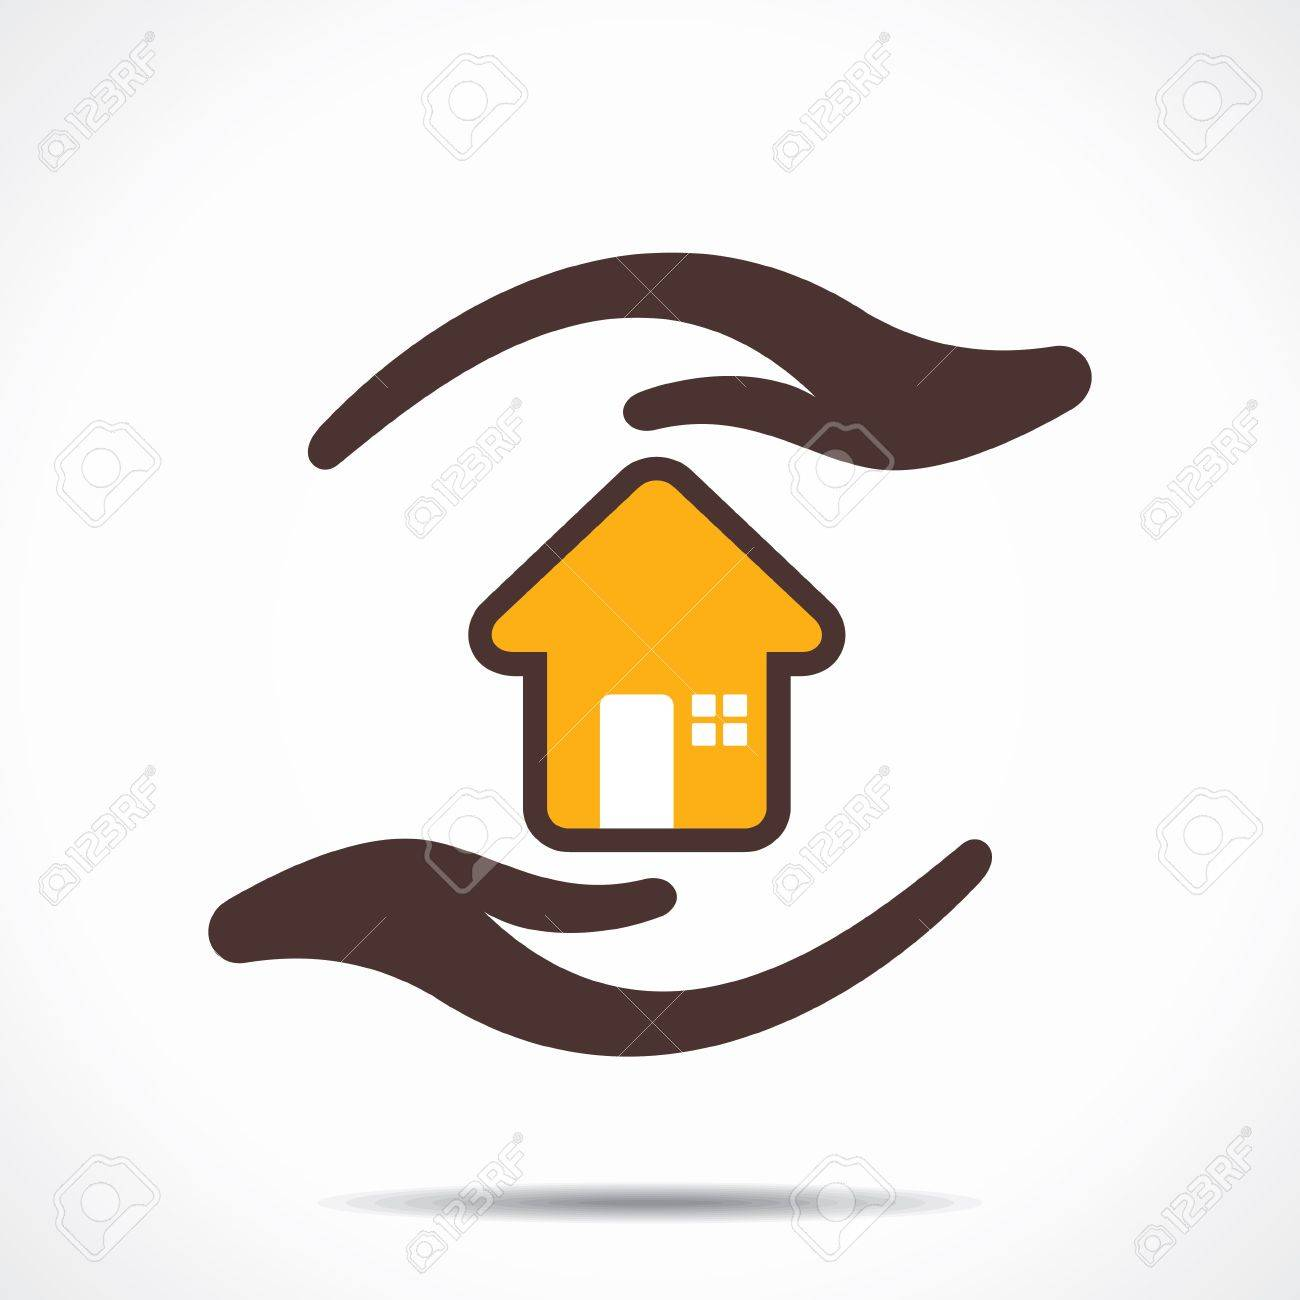 safe and secure home stock Stock Vector - 21695063